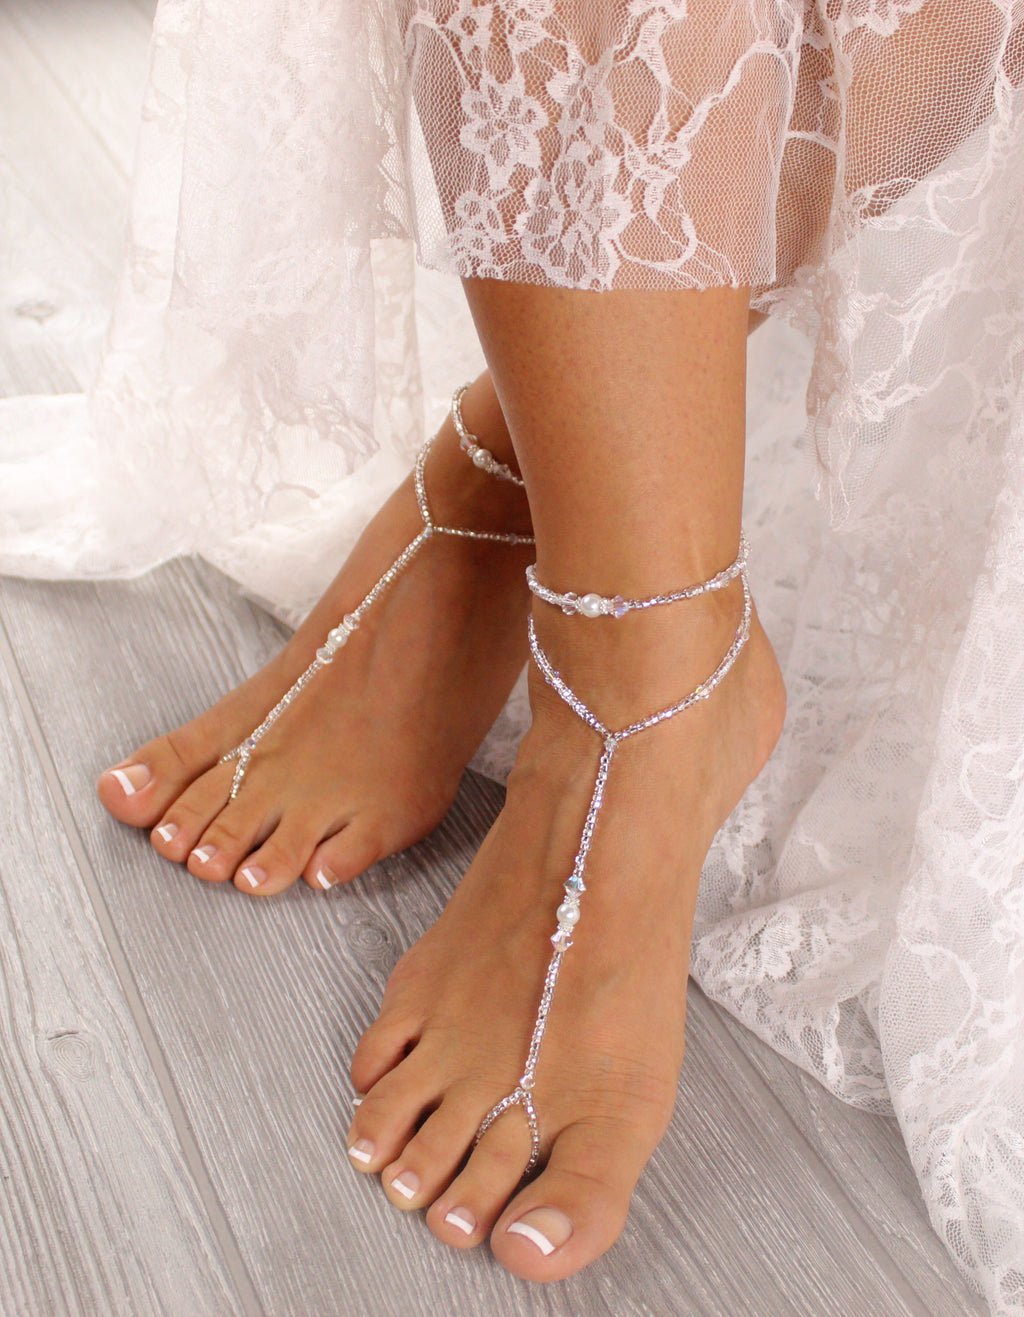 Wedding-Barefoot-Sandal-Bridal-Foot-Jewelry-Beaded-Footless-Sandals